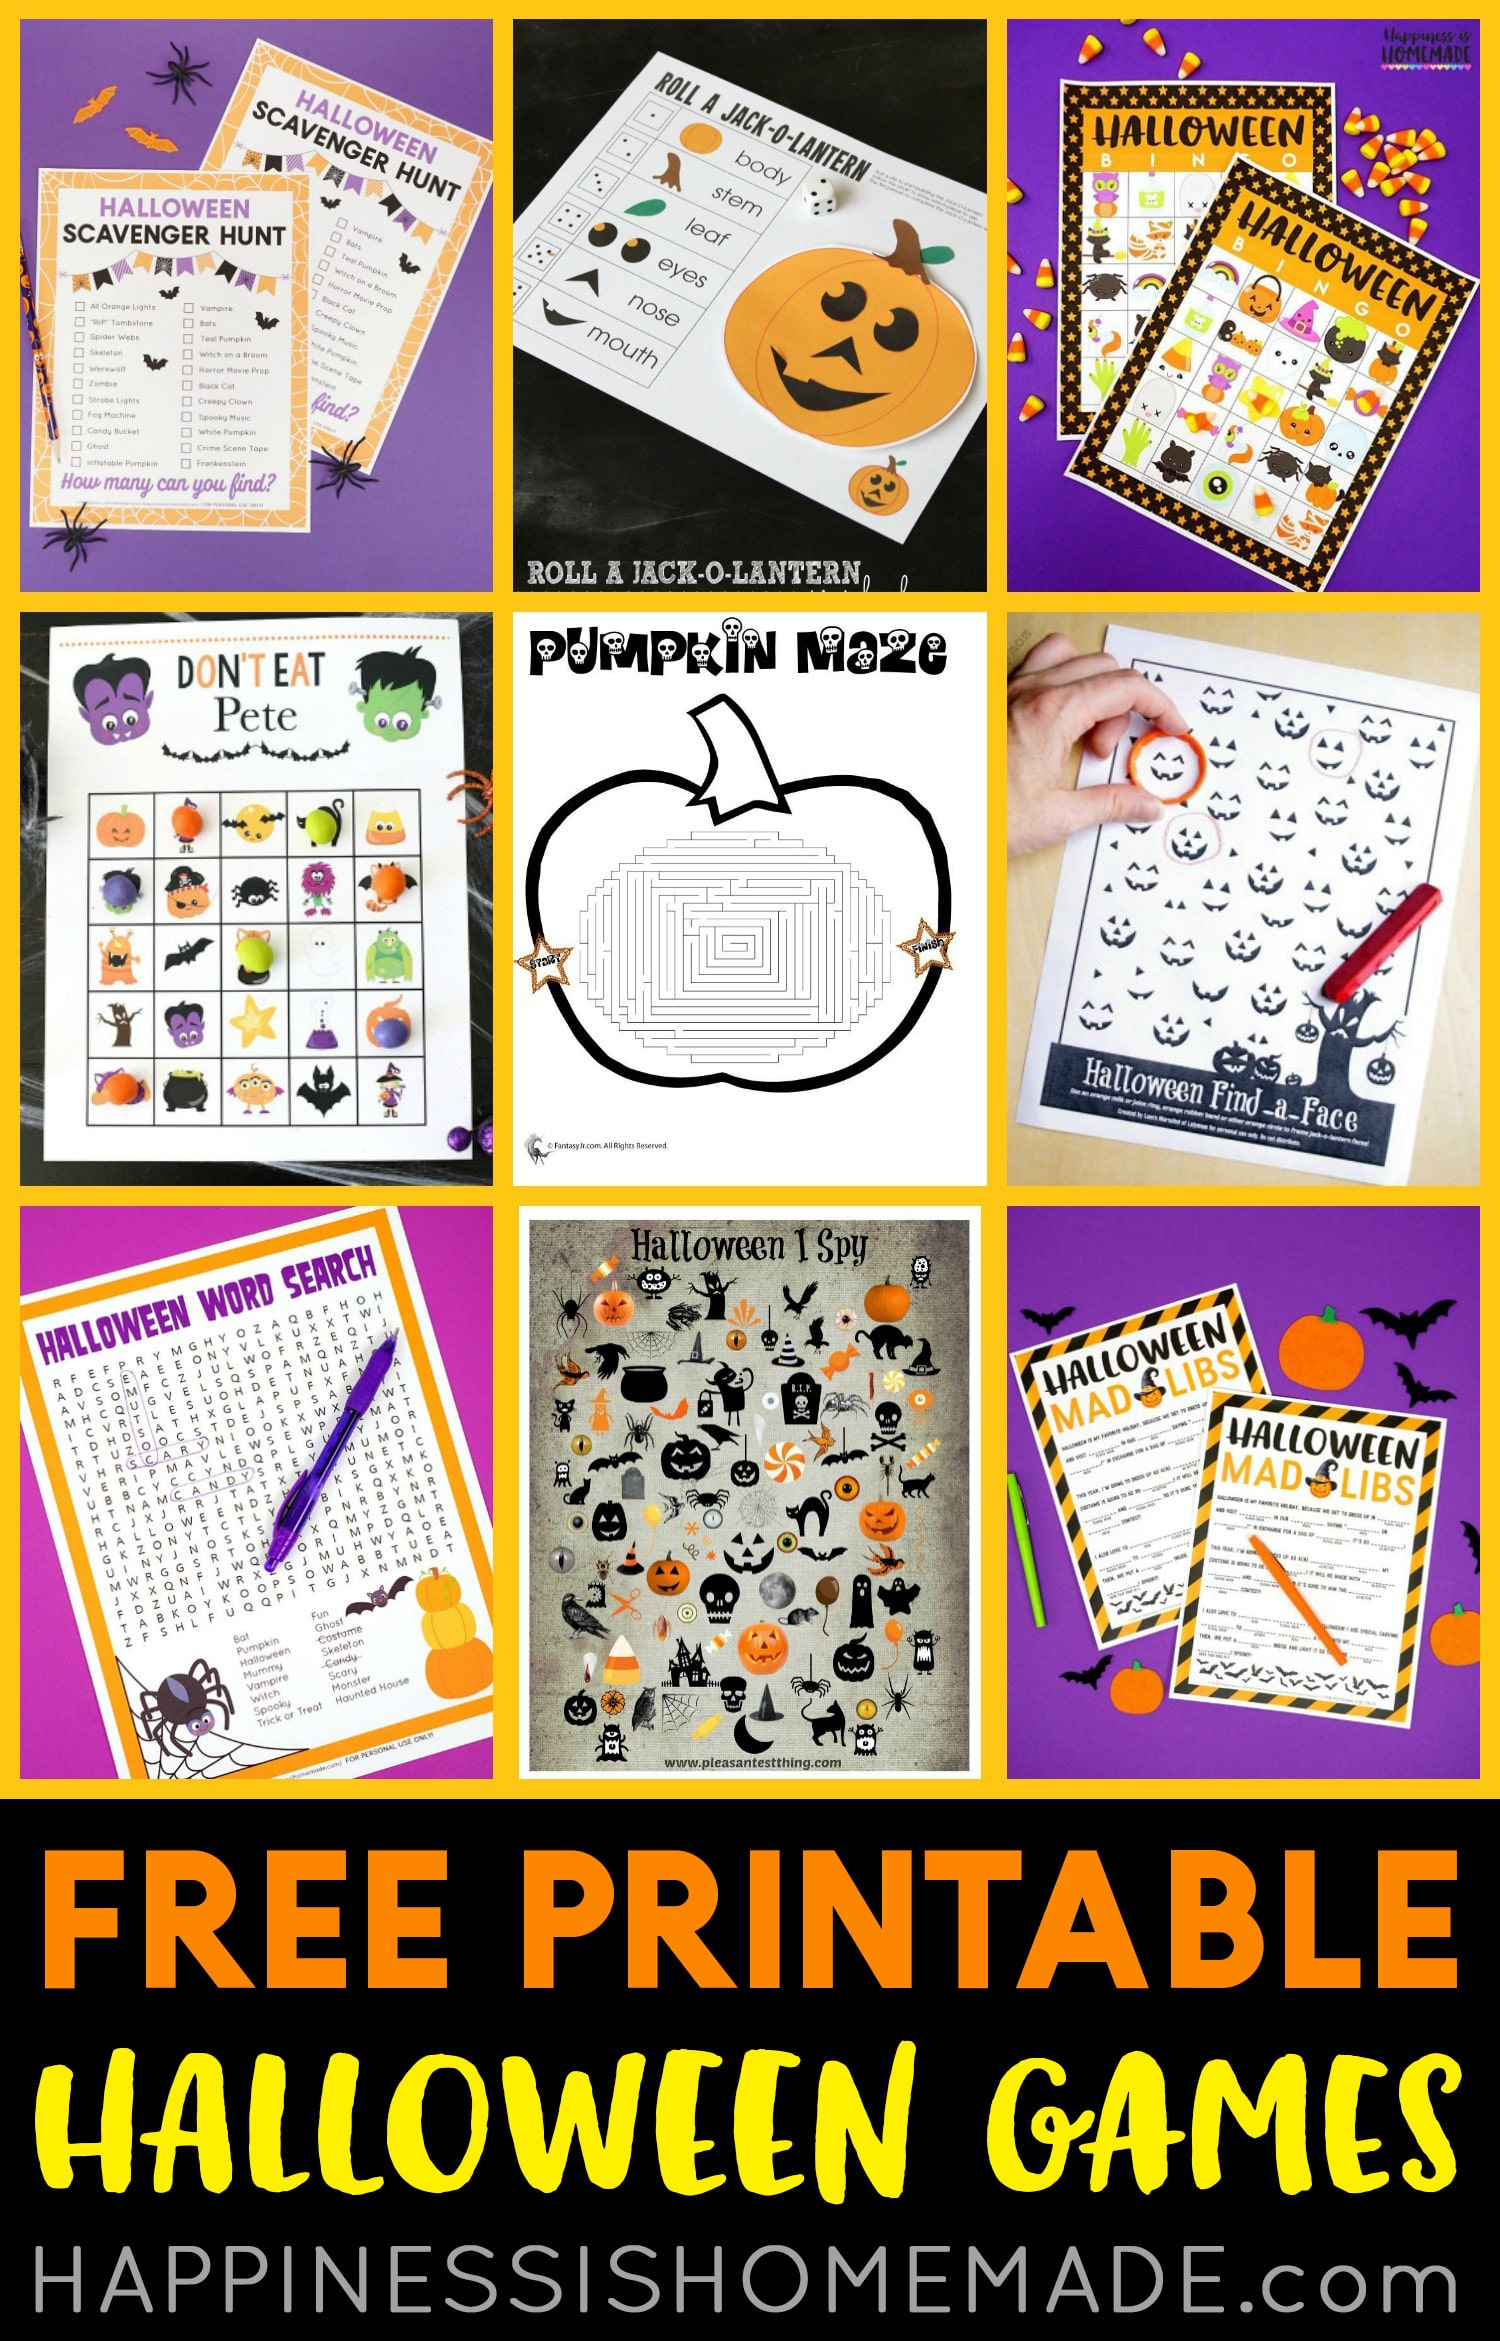 Free Printable Halloween Games for Kids! Everyone will love these ready-to-go Halloween games - simply print and play! Great for Halloween parties, classrooms, family game nights, and more! via @hihomemadeblog